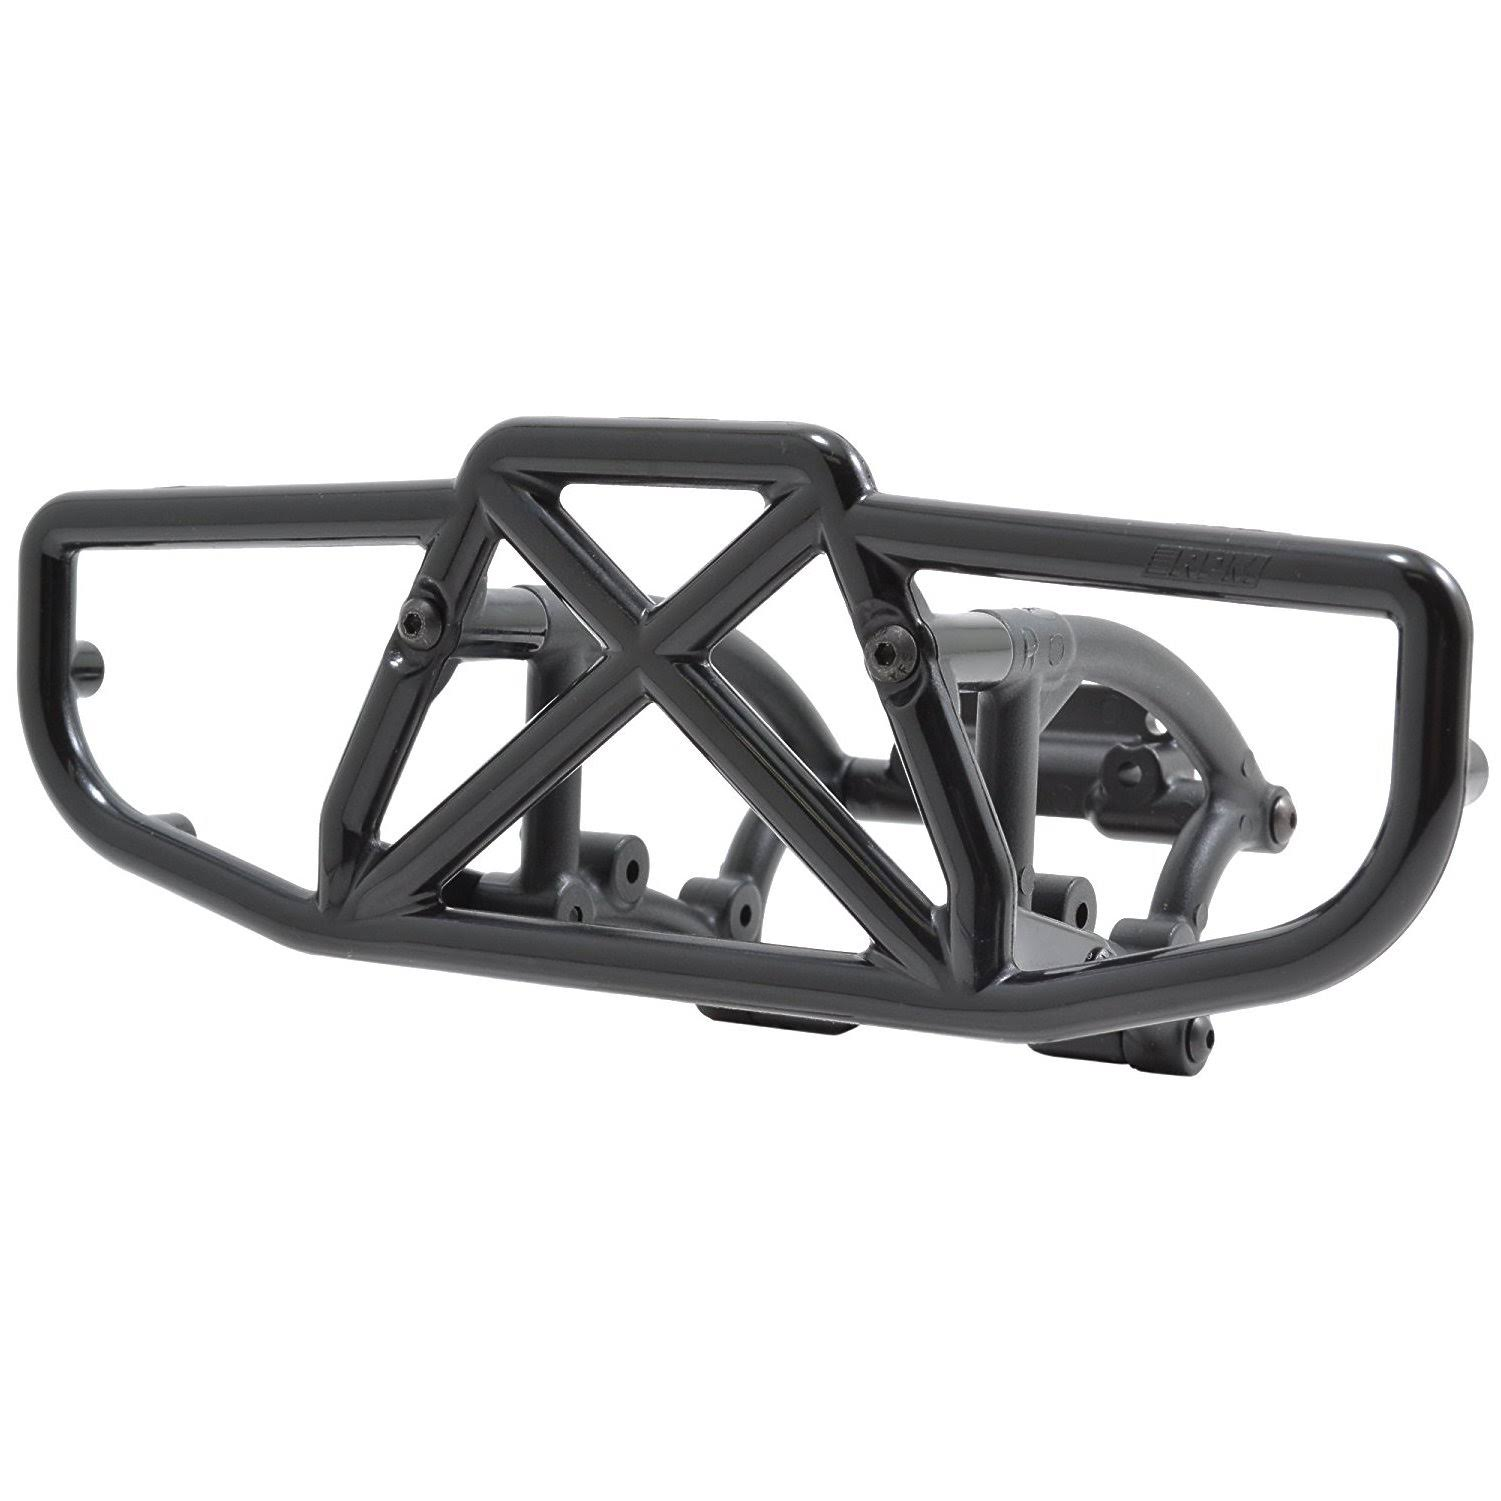 RPM 73842 ECX Torment 4x4 Rear Bumper - Black